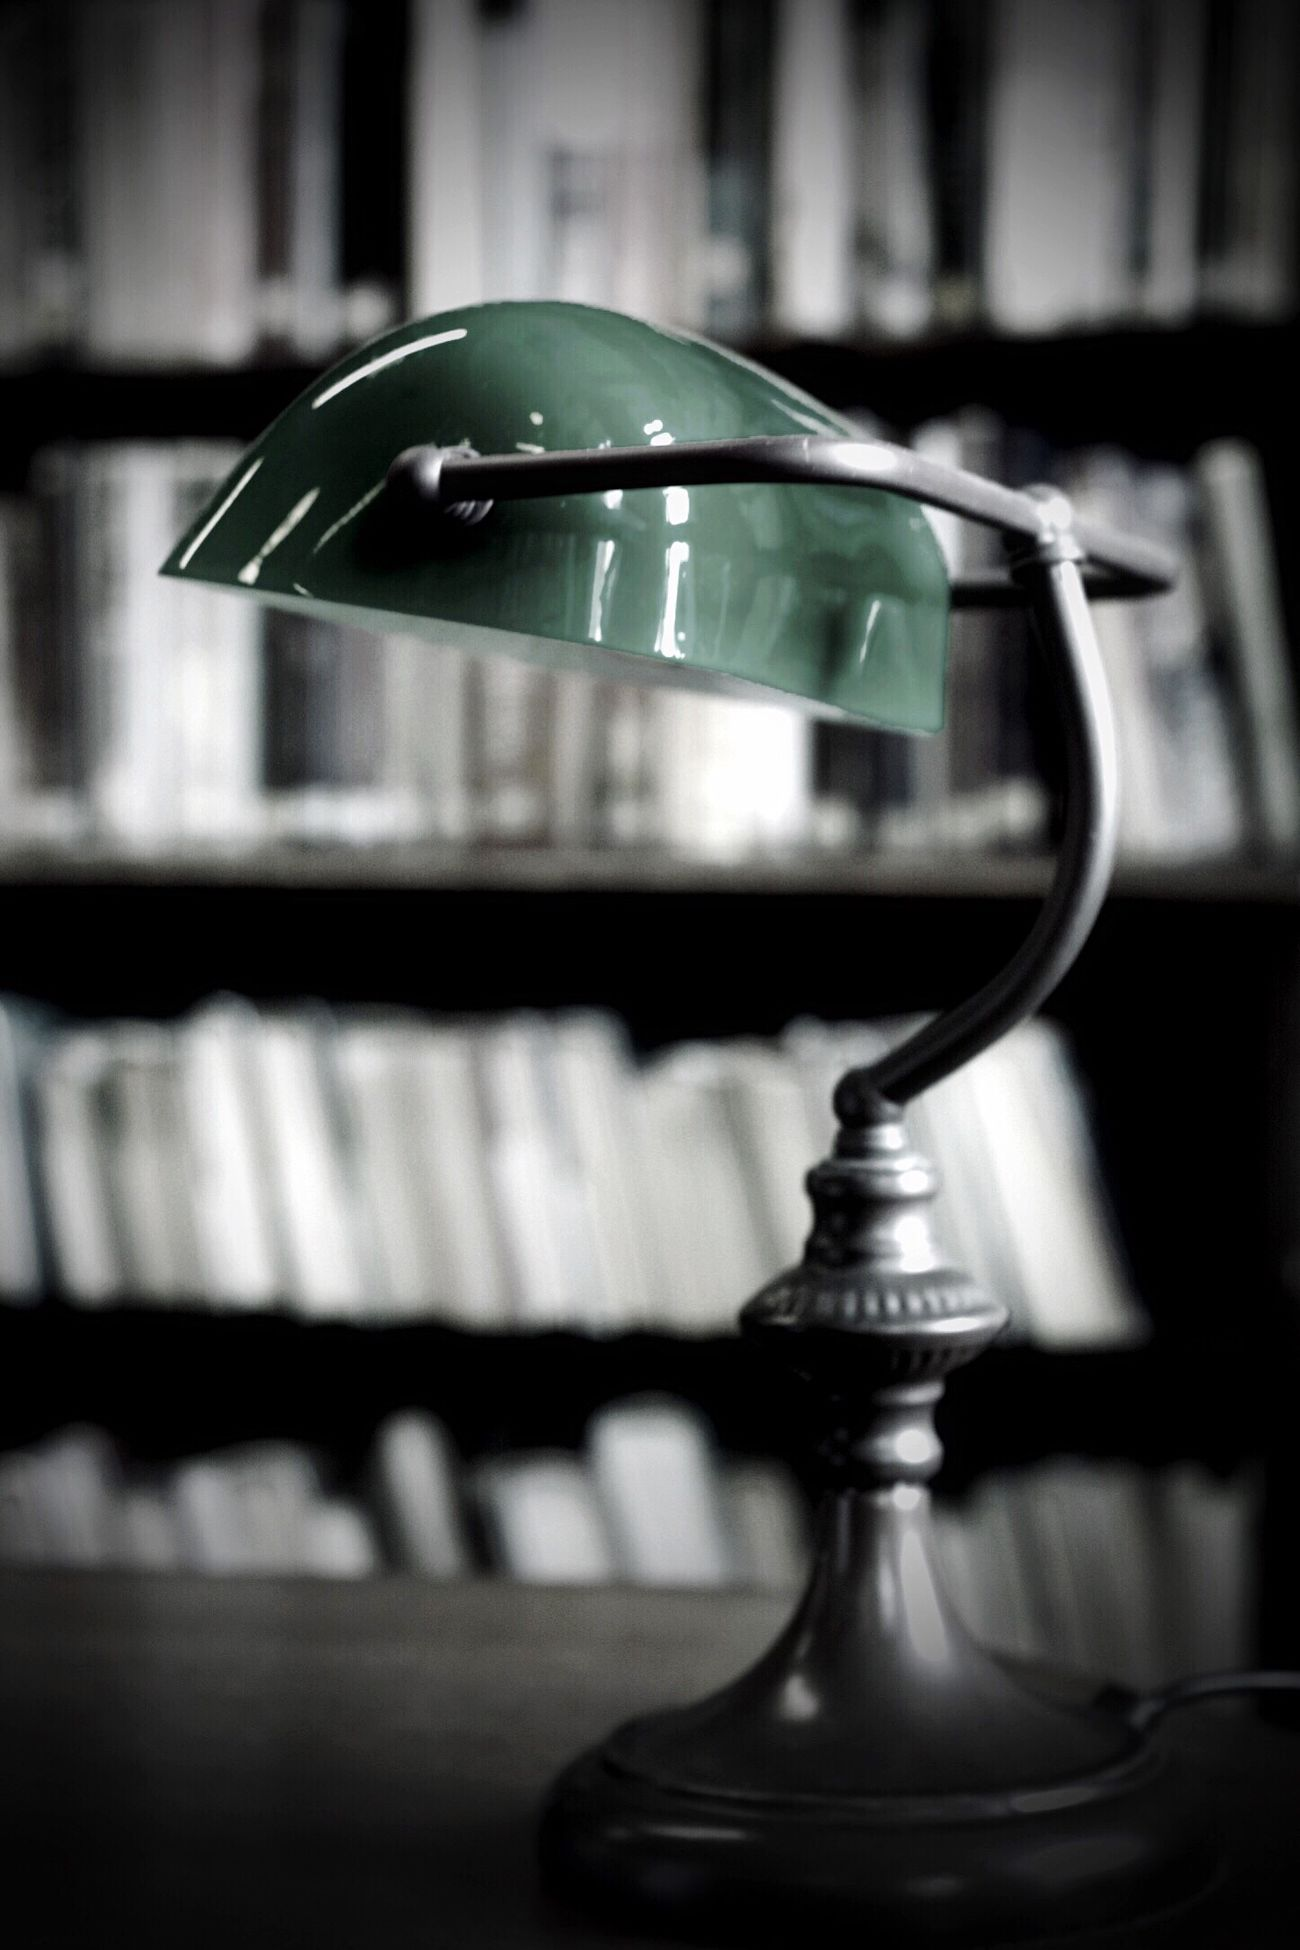 Indoors  No People Close-up Day Library Lamp Bookshelf Books 50mm Nikon